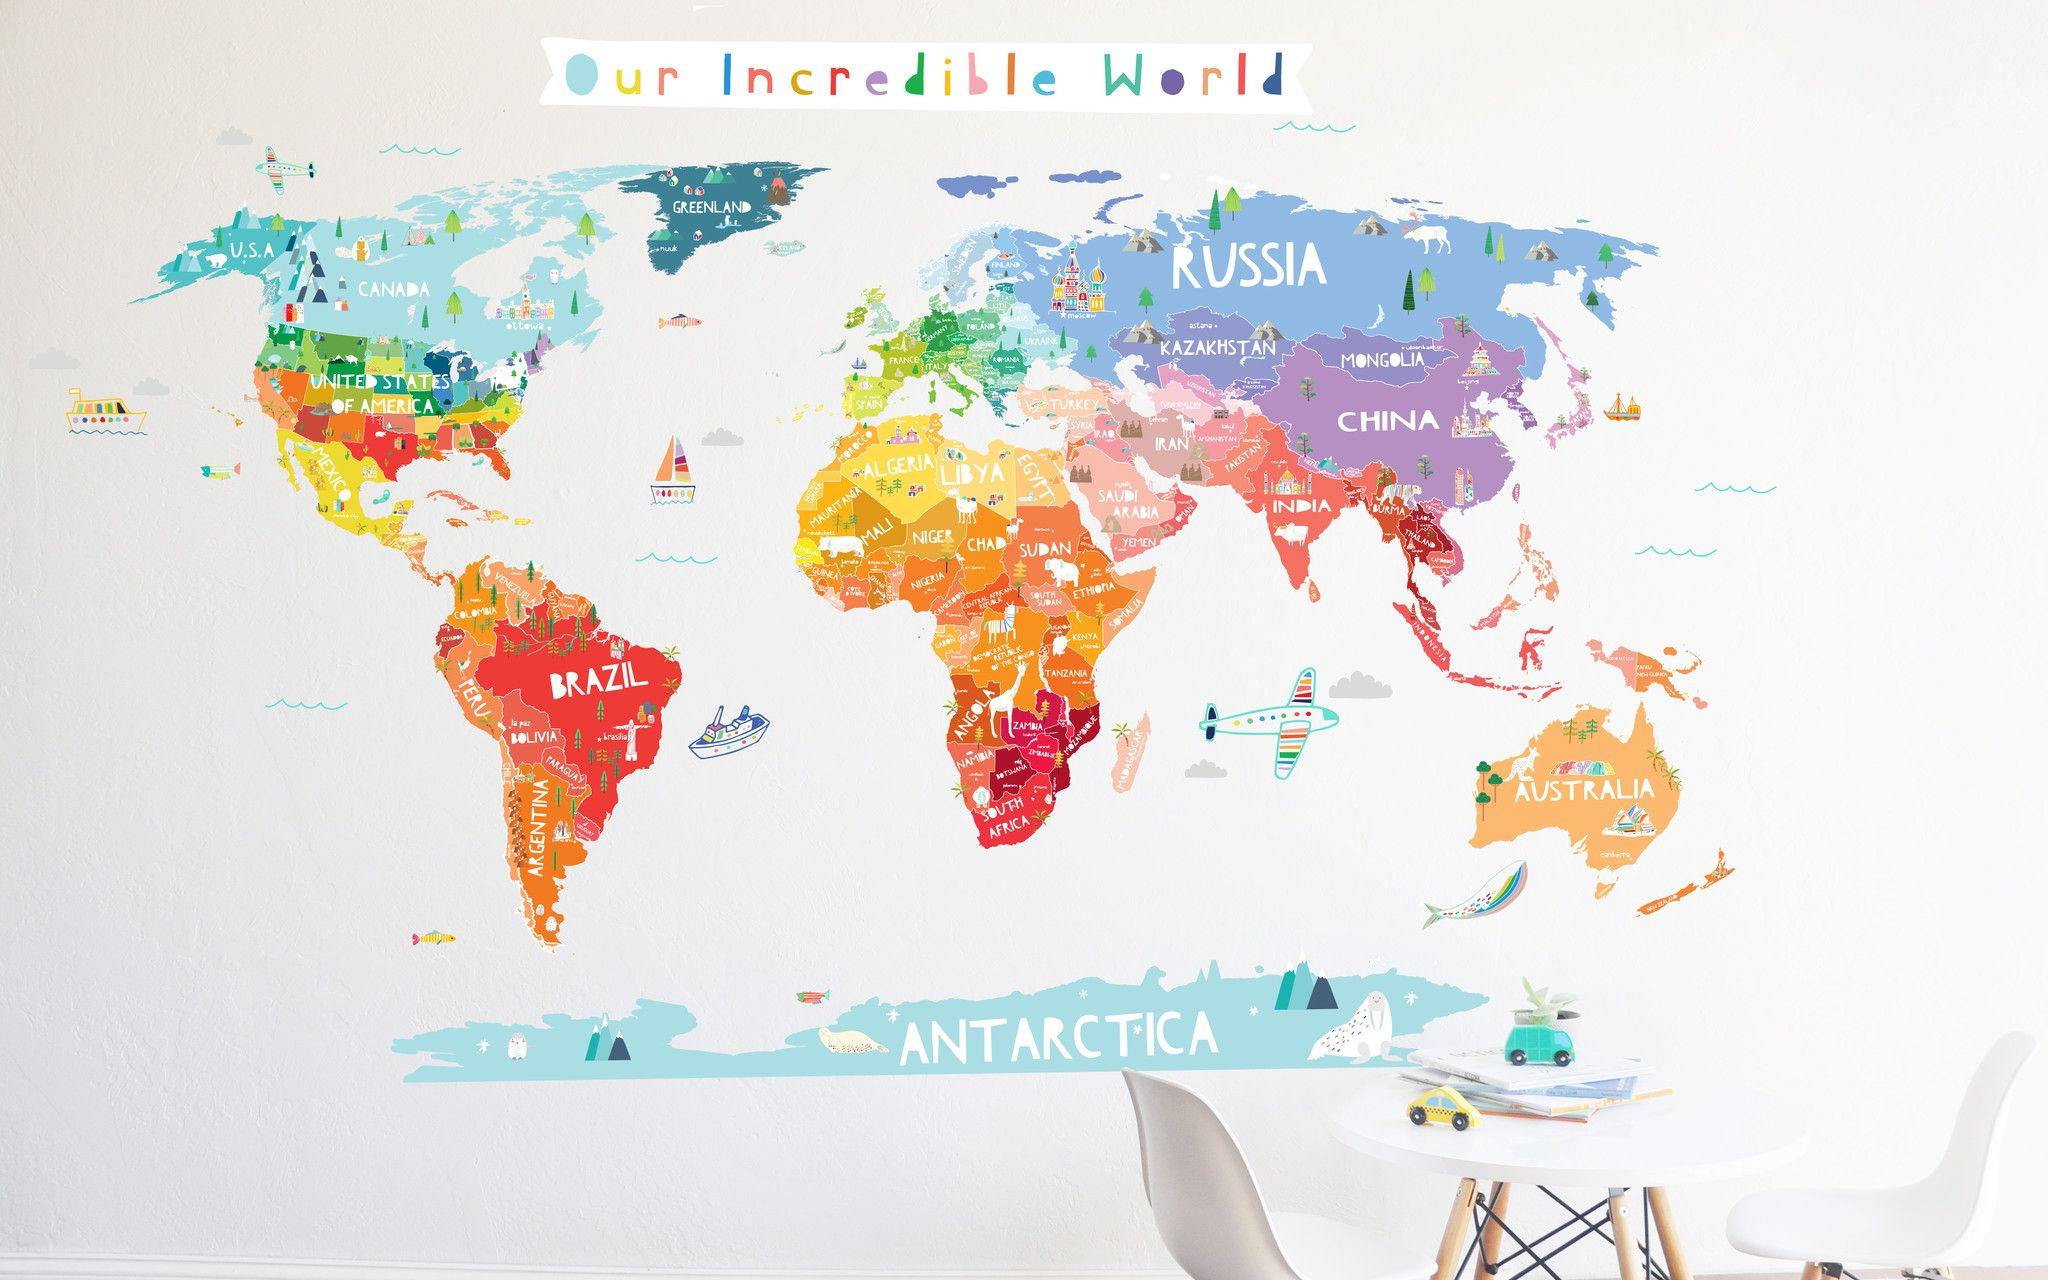 Our incredible world die cut world map wall decal with our incredible world die cut world map wall decal thelovelywall gumiabroncs Image collections